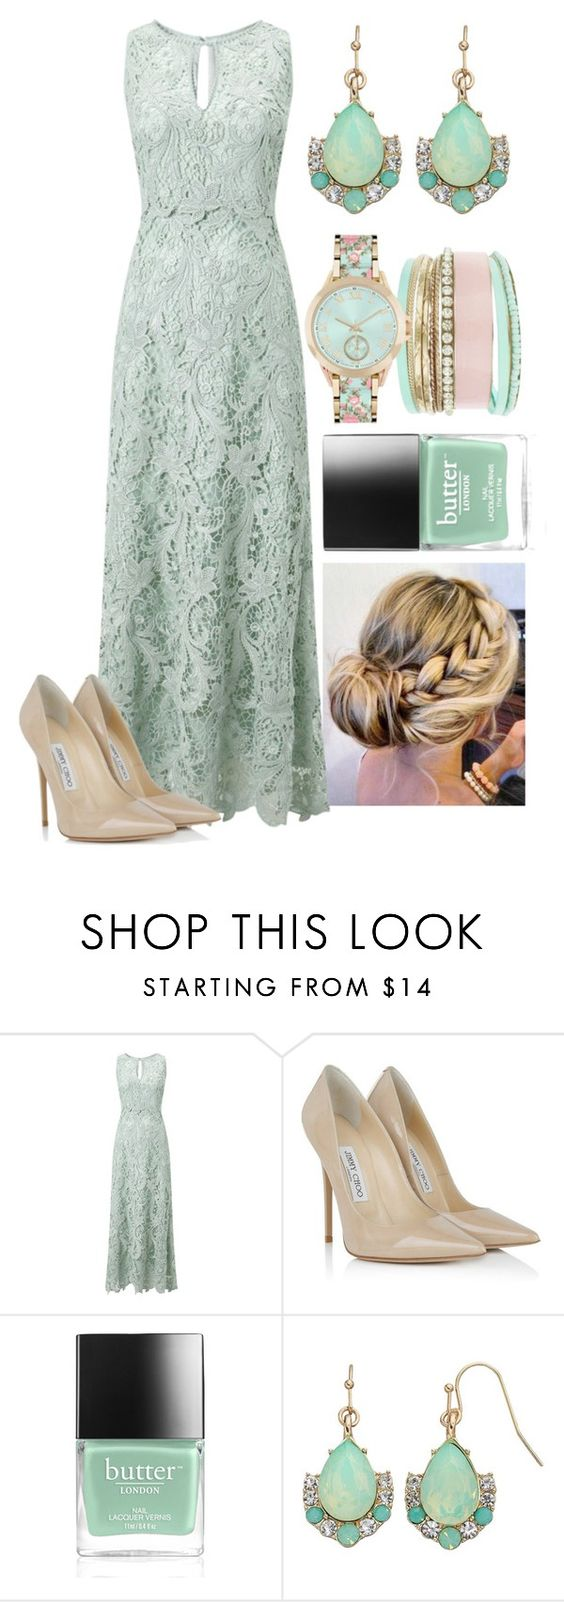 """""""Mint themed"""" by princessserenaadams ❤ liked on Polyvore featuring Phase Eight, Jimmy Choo, Butter London, LC Lauren Conrad and Jessica Carlyle"""